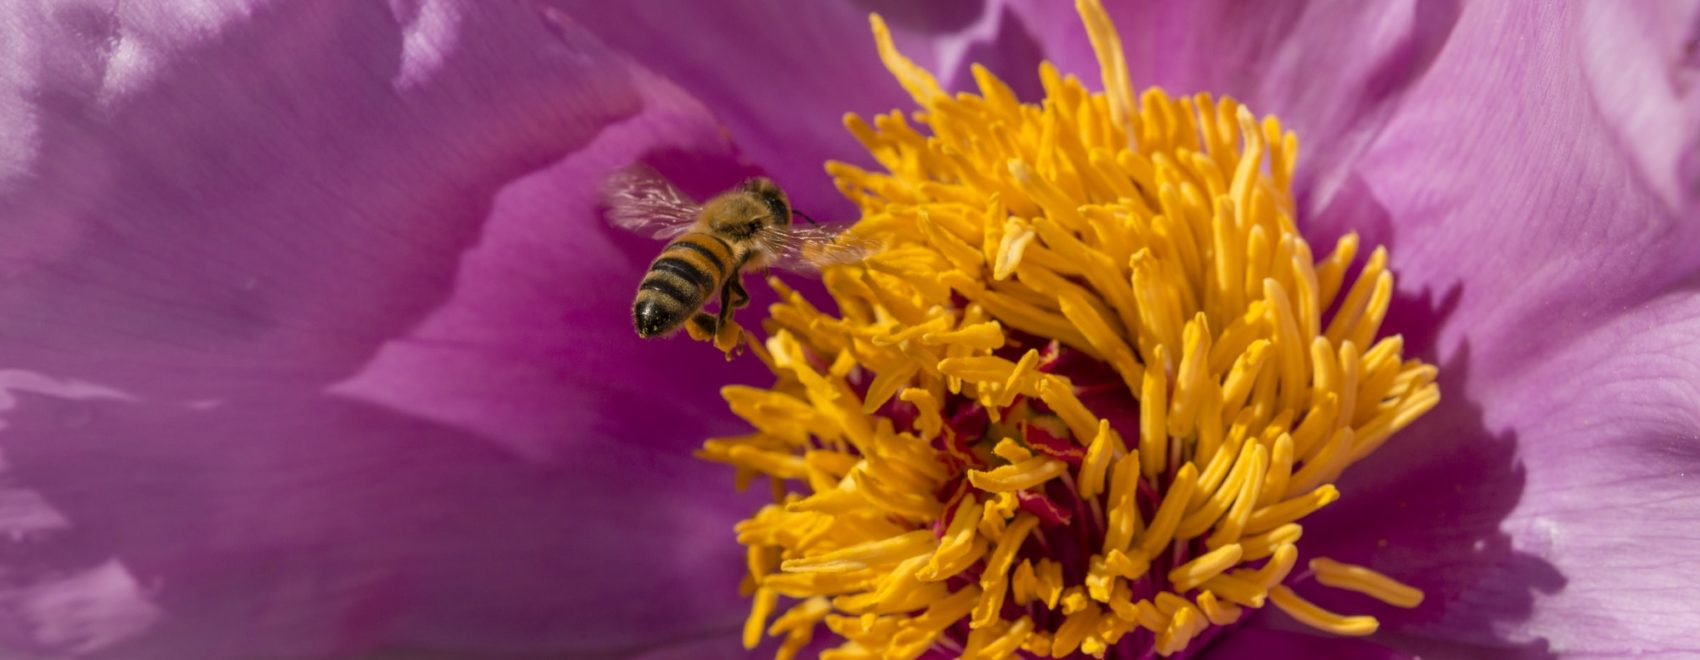 Honey bee on paeony flower